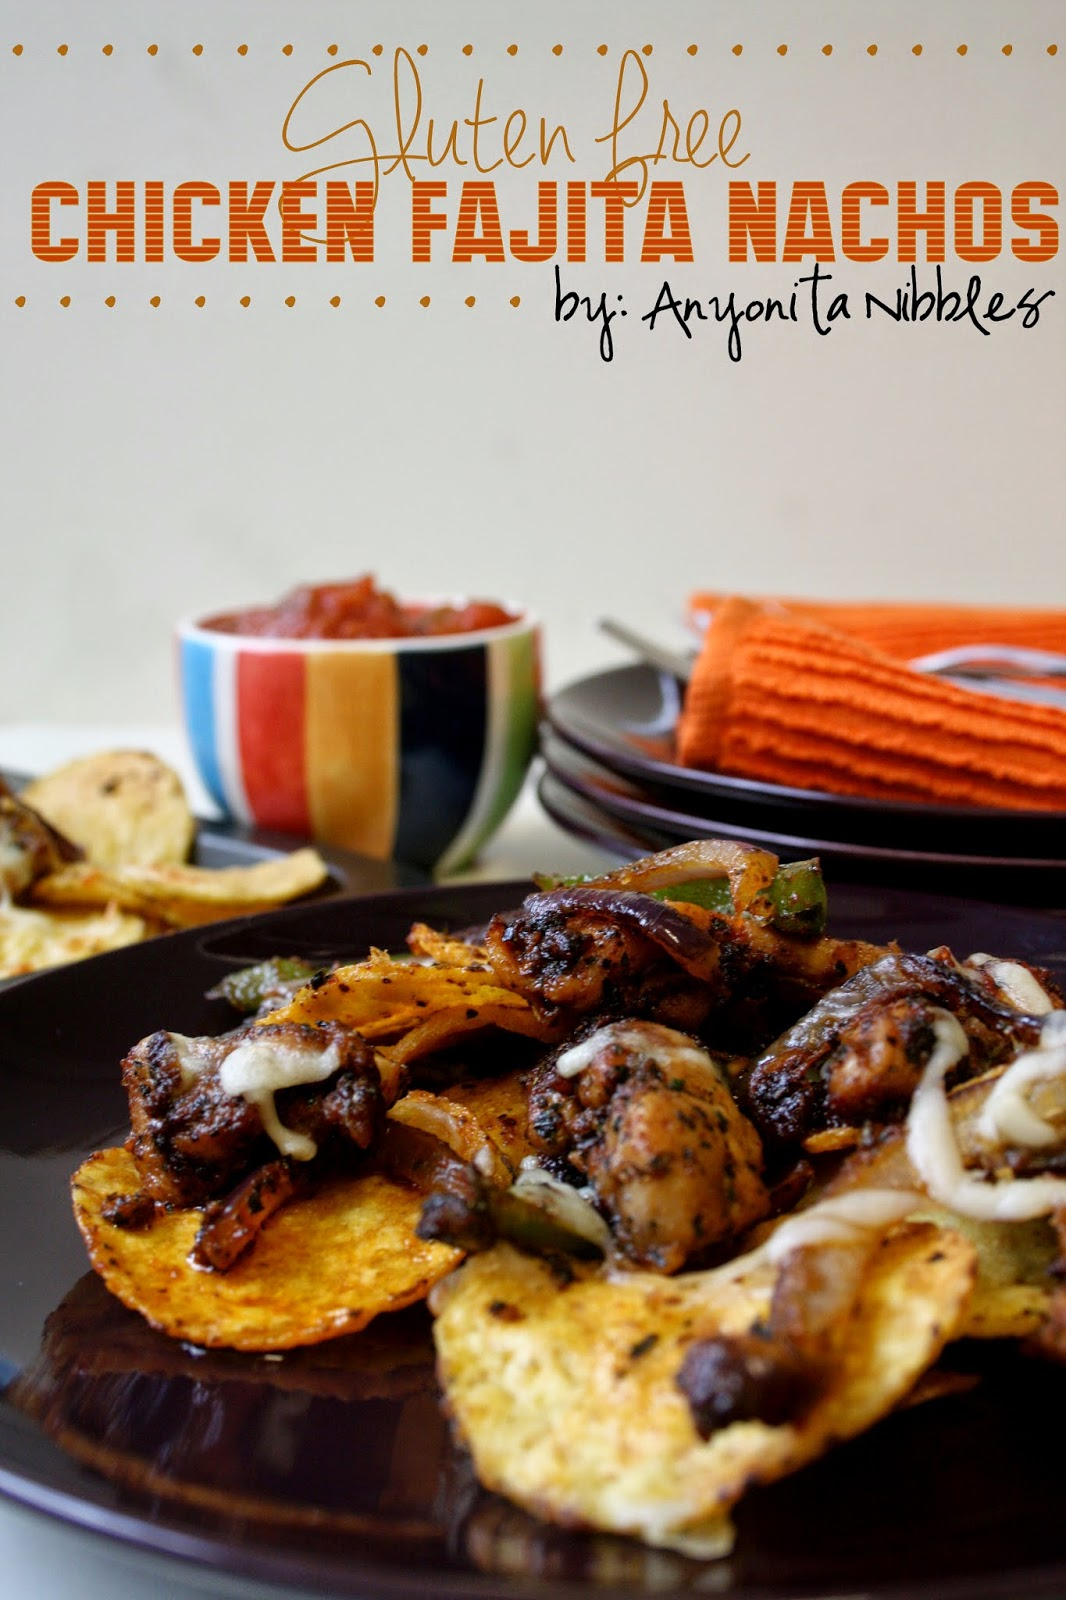 Gluten Free Chicken Fajita Nachos from Anyonita-nibbles.co.uk